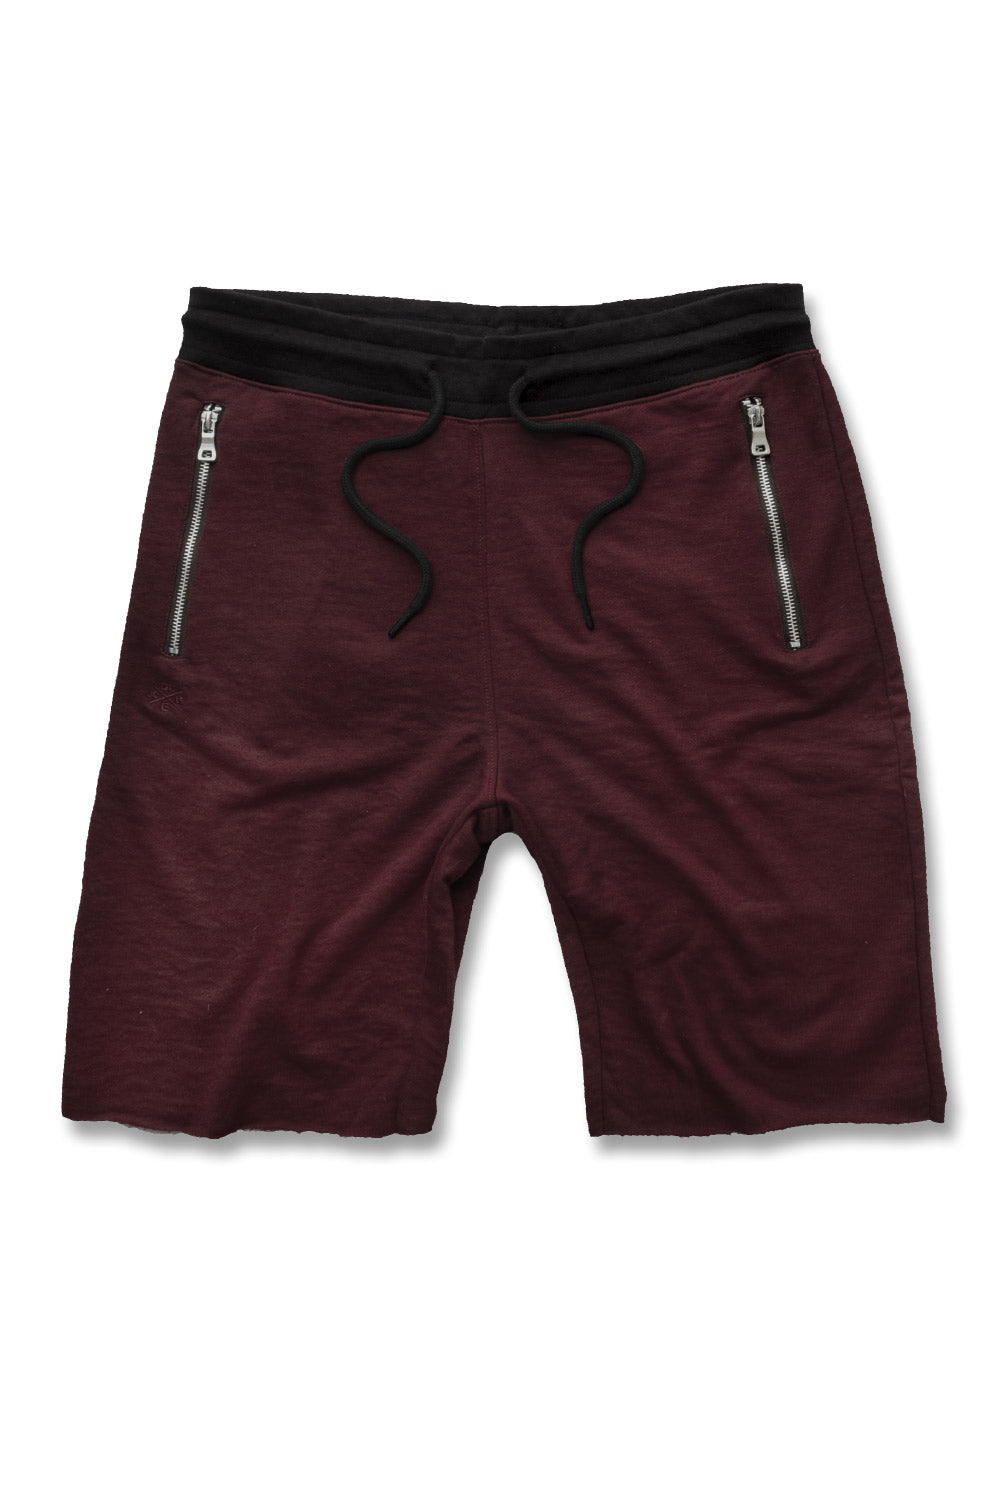 4fda4164222cbe Raw Edge French Terry Shorts (Wine) – Jordan Craig